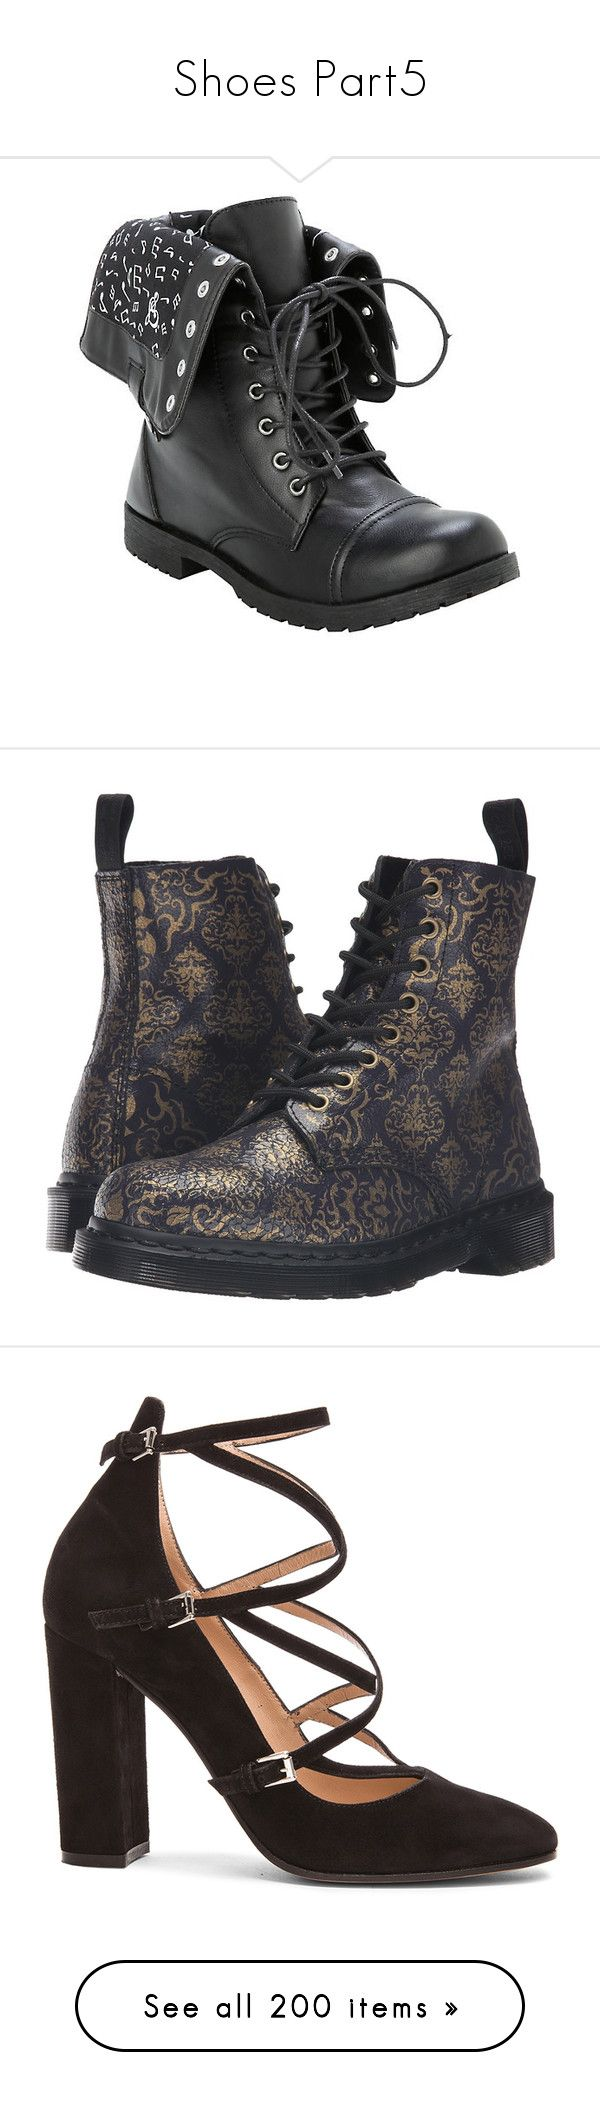 """""""Shoes Part5"""" by topazwarrior ❤ liked on Polyvore featuring shoes, boots, ankle booties, 20. boots., footwear, combat boots, combat booties, black lace up boots, black lace up ankle booties and black combat boots"""